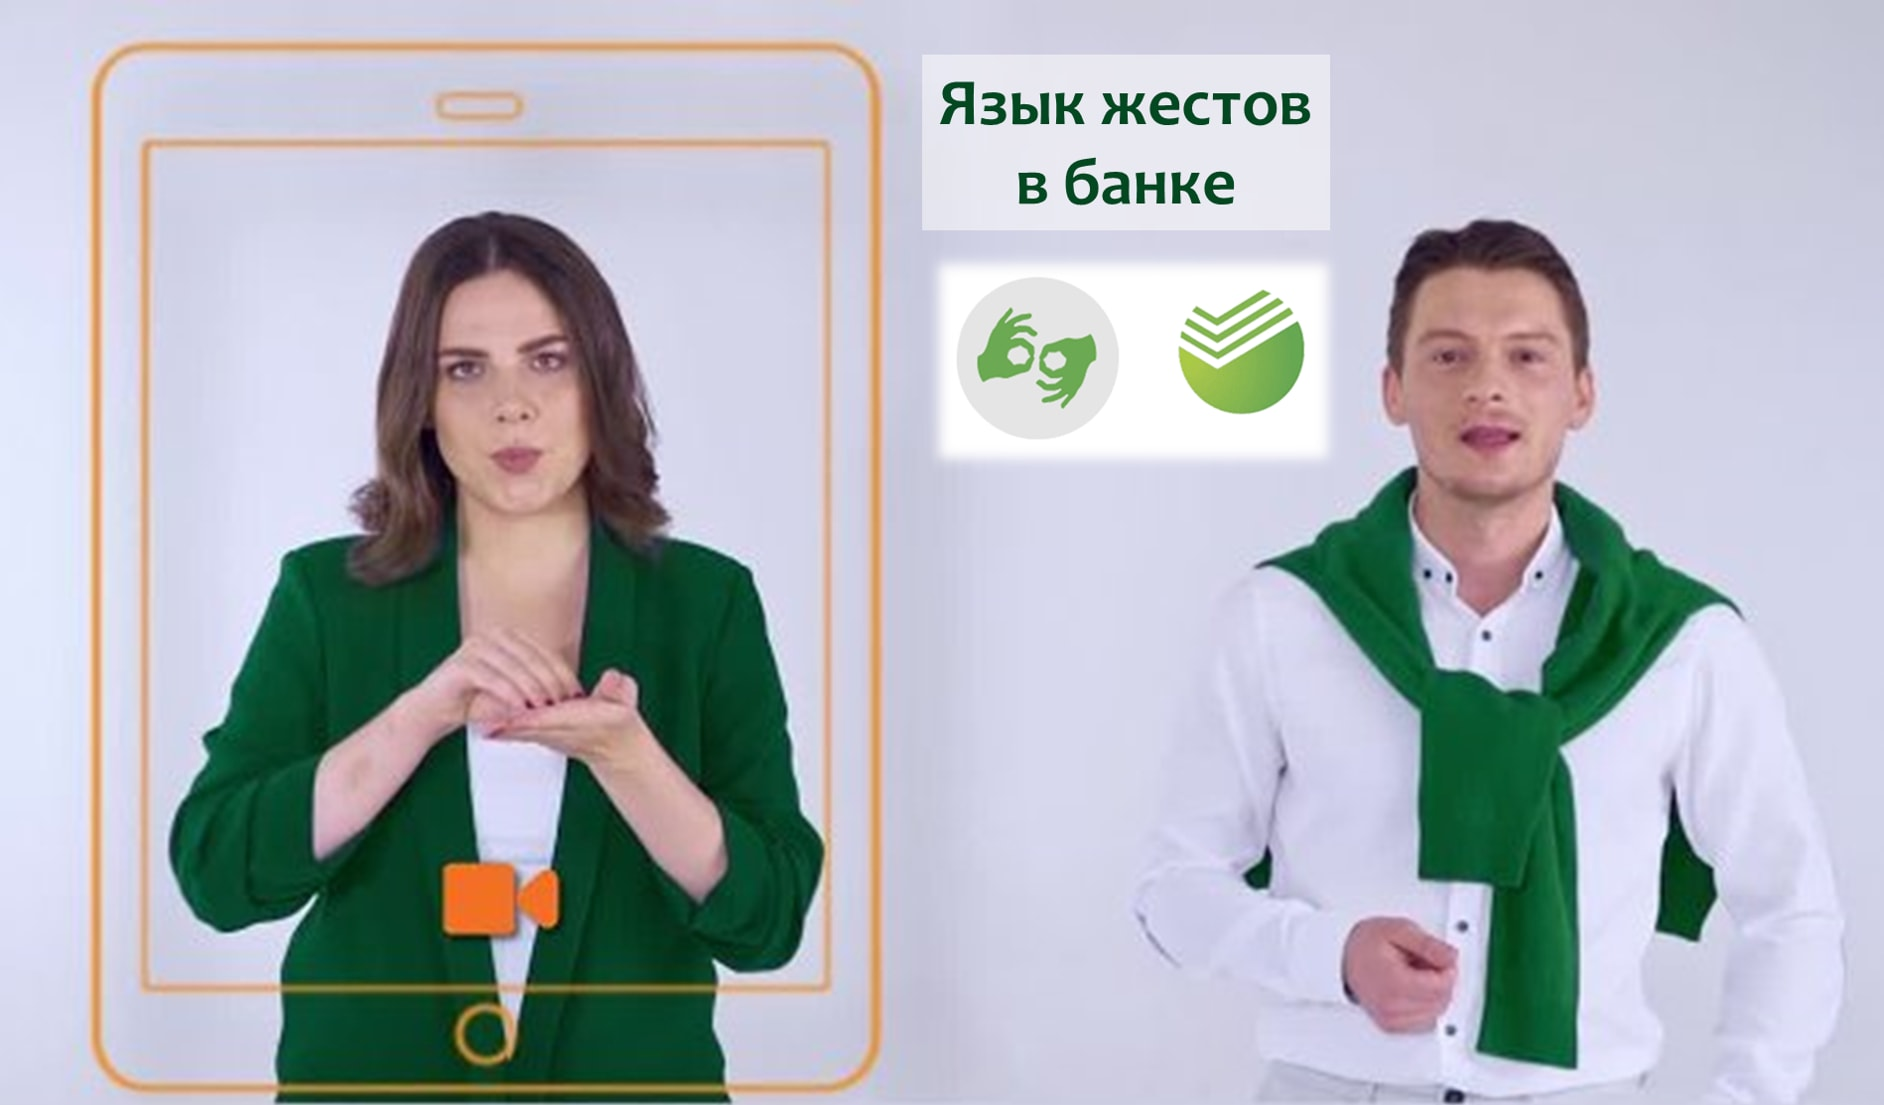 You are currently viewing Сурдоперевод в Сбербанке